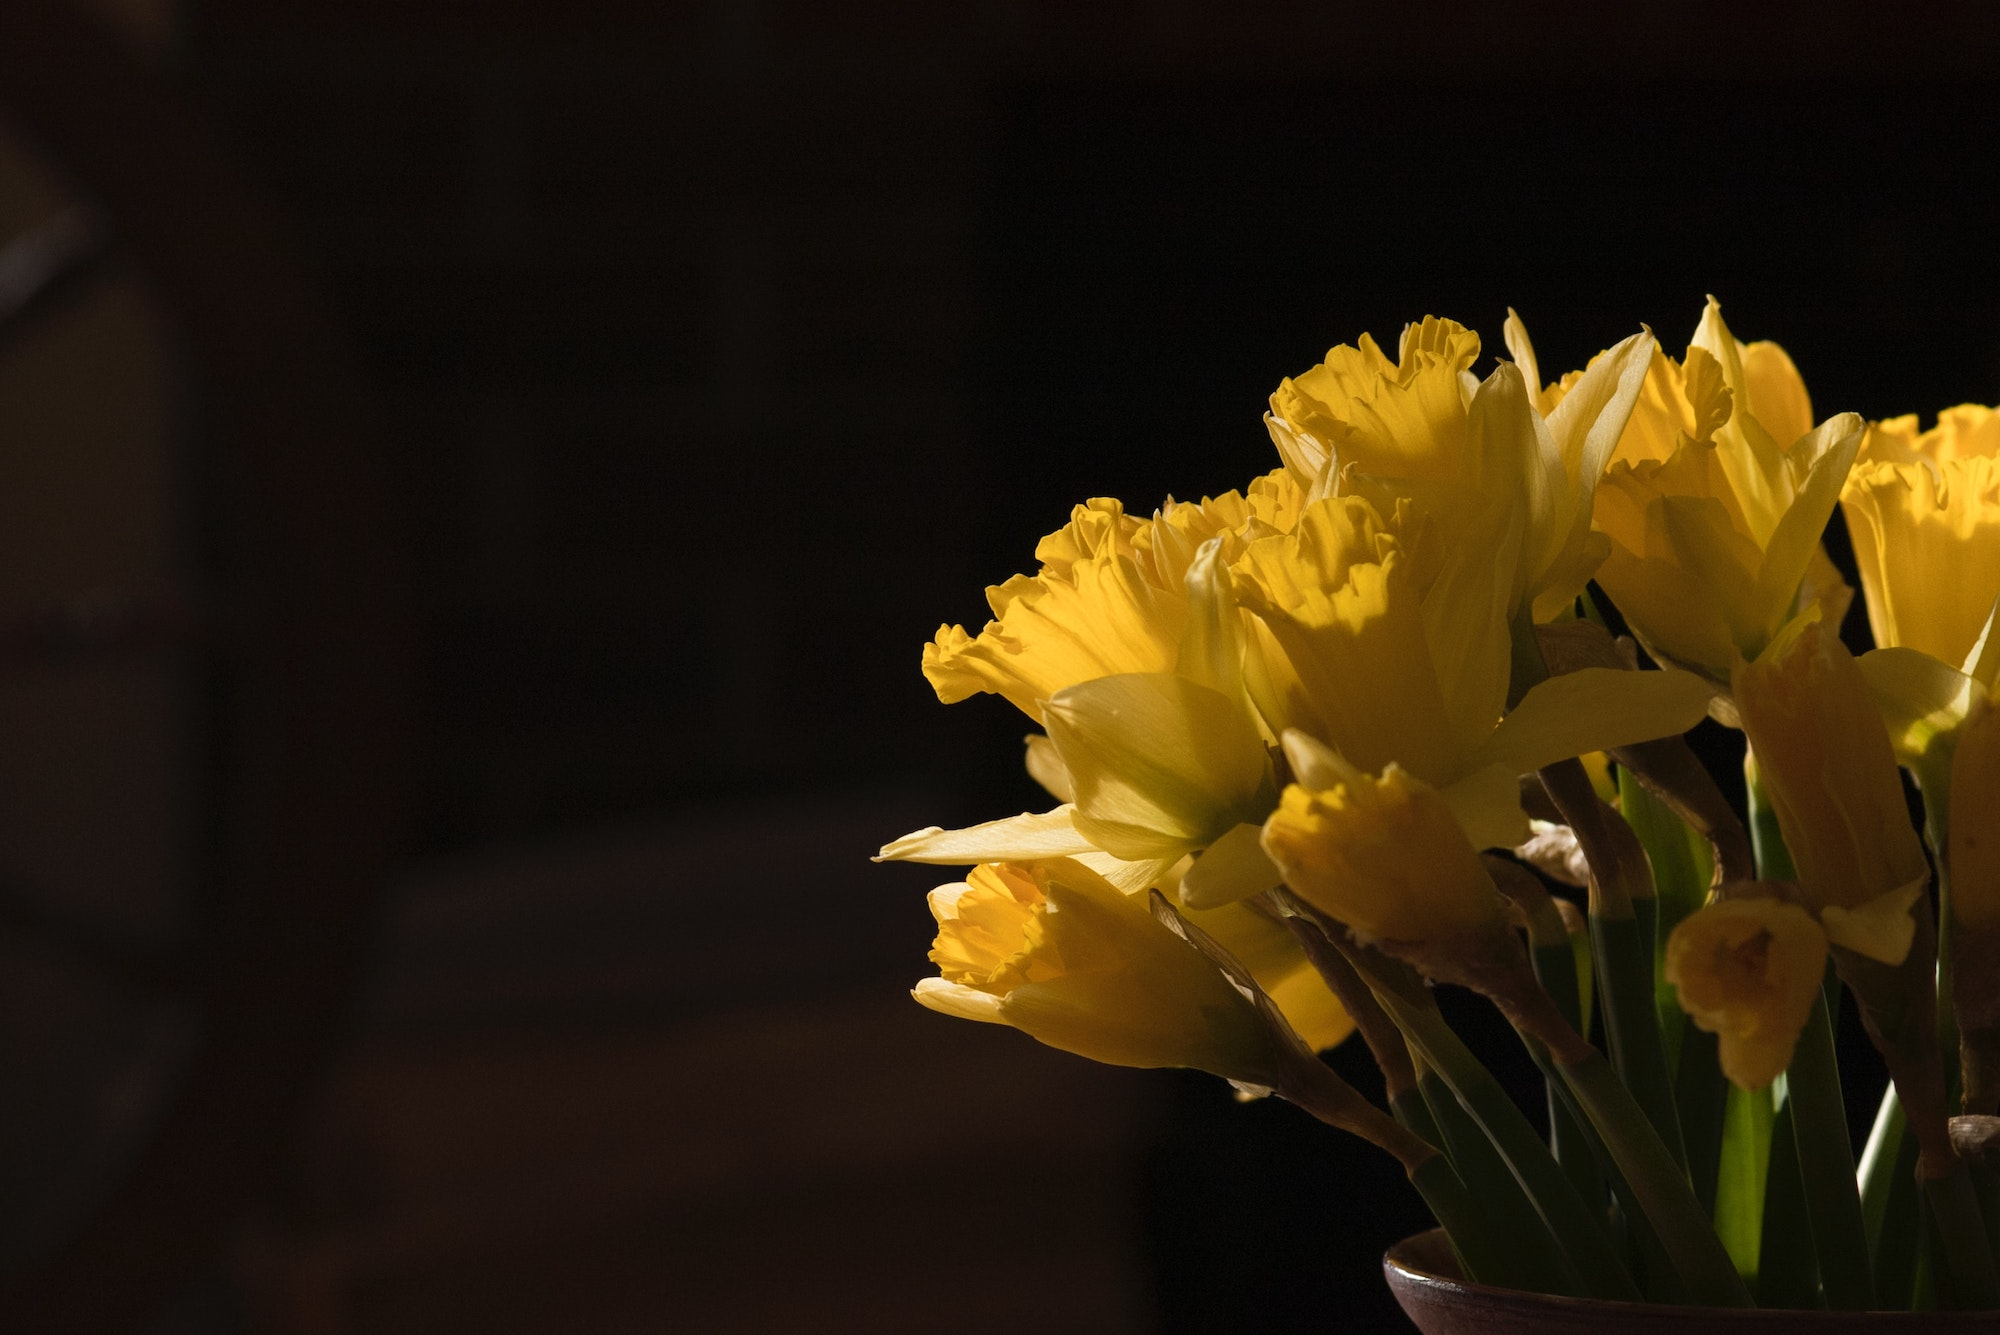 A bouquet of yellow narcissus flowers. Photo courtesy of Oxana Lyashenko on Unsplash.